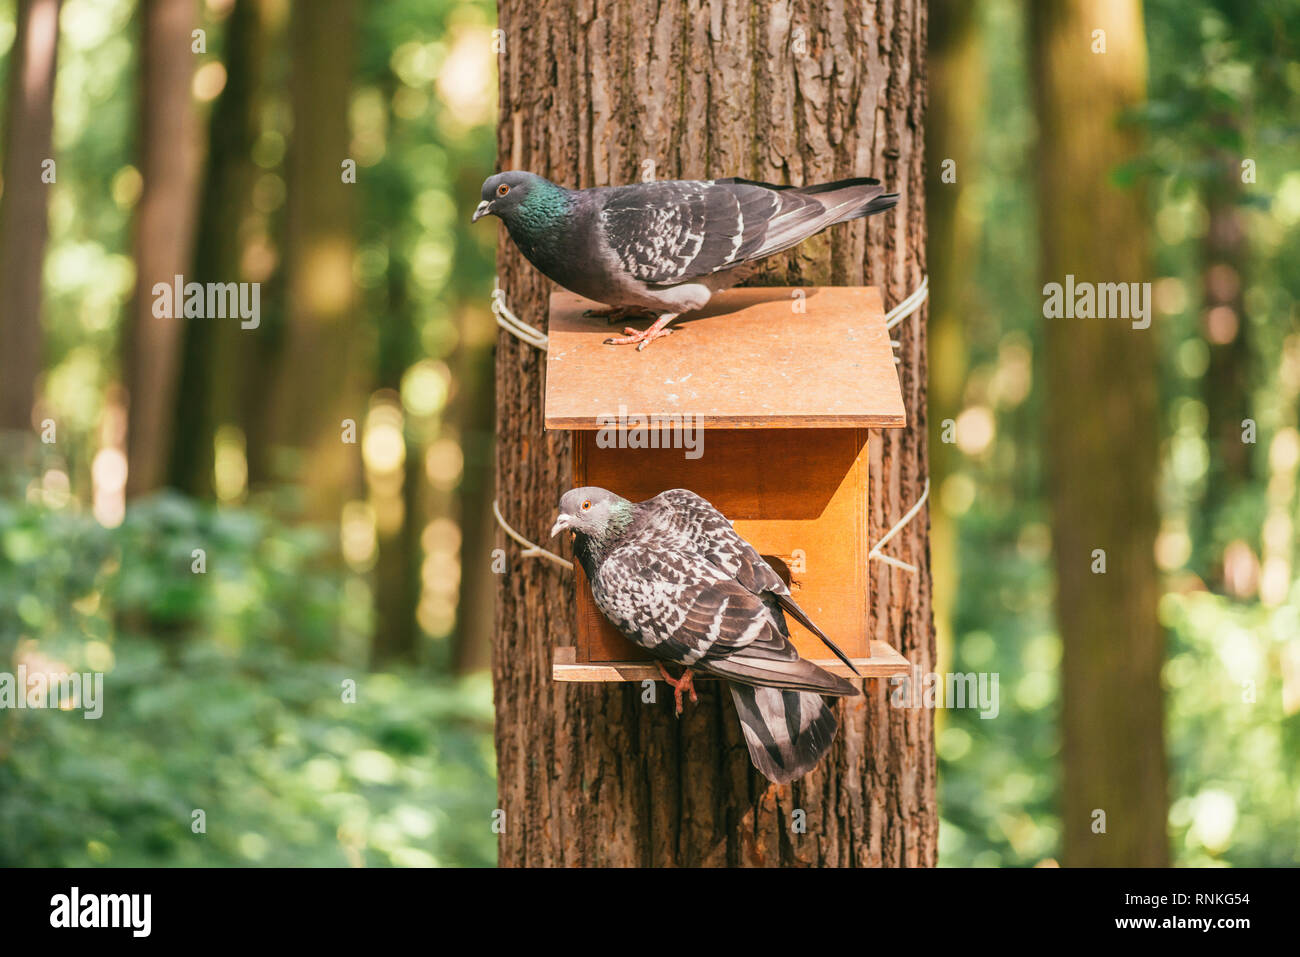 Two Pigeons Sitting On A Large Wooden Feeder Nailed To The Trunk Of